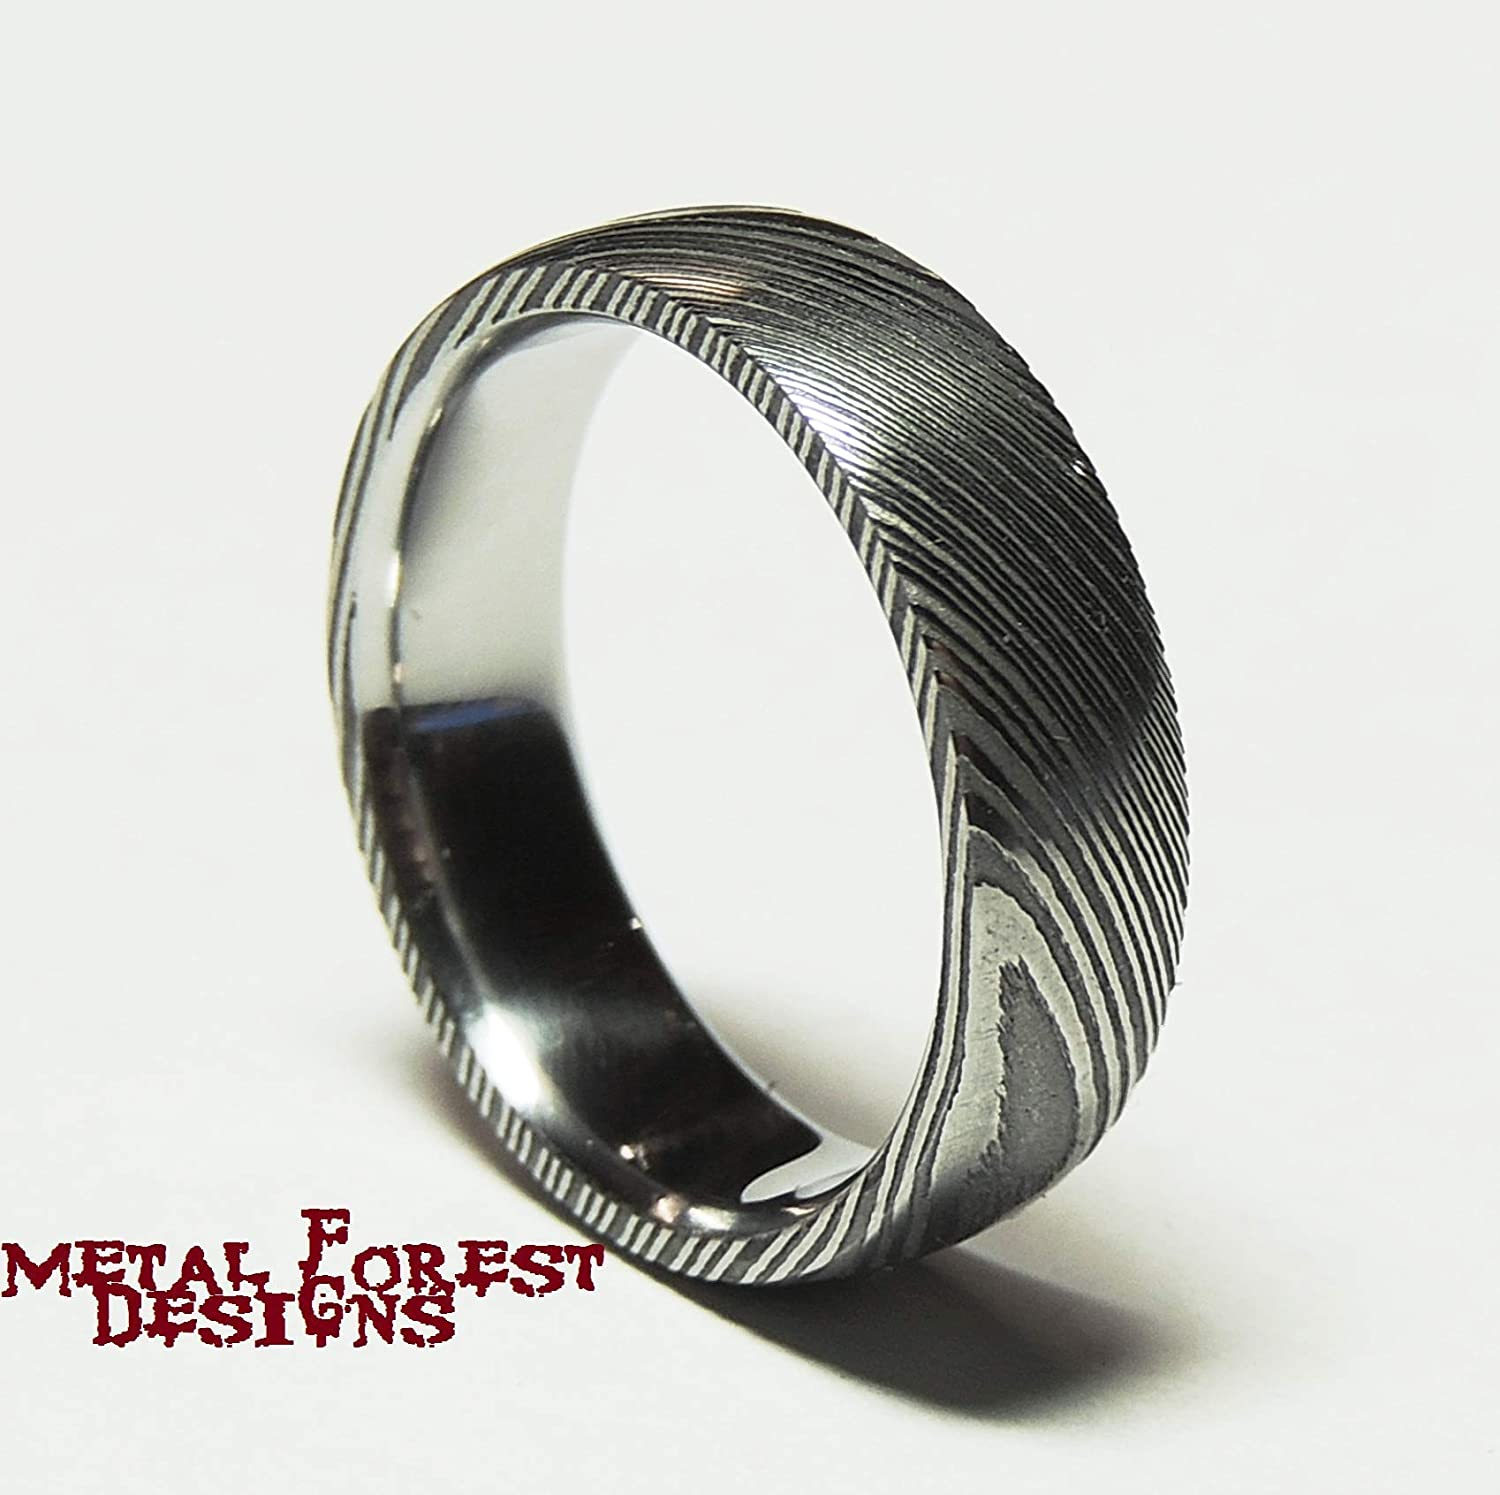 8a7d3c86fc164 Amazon.com: Stainless Damascus Steel Ring with Polished Inside ...